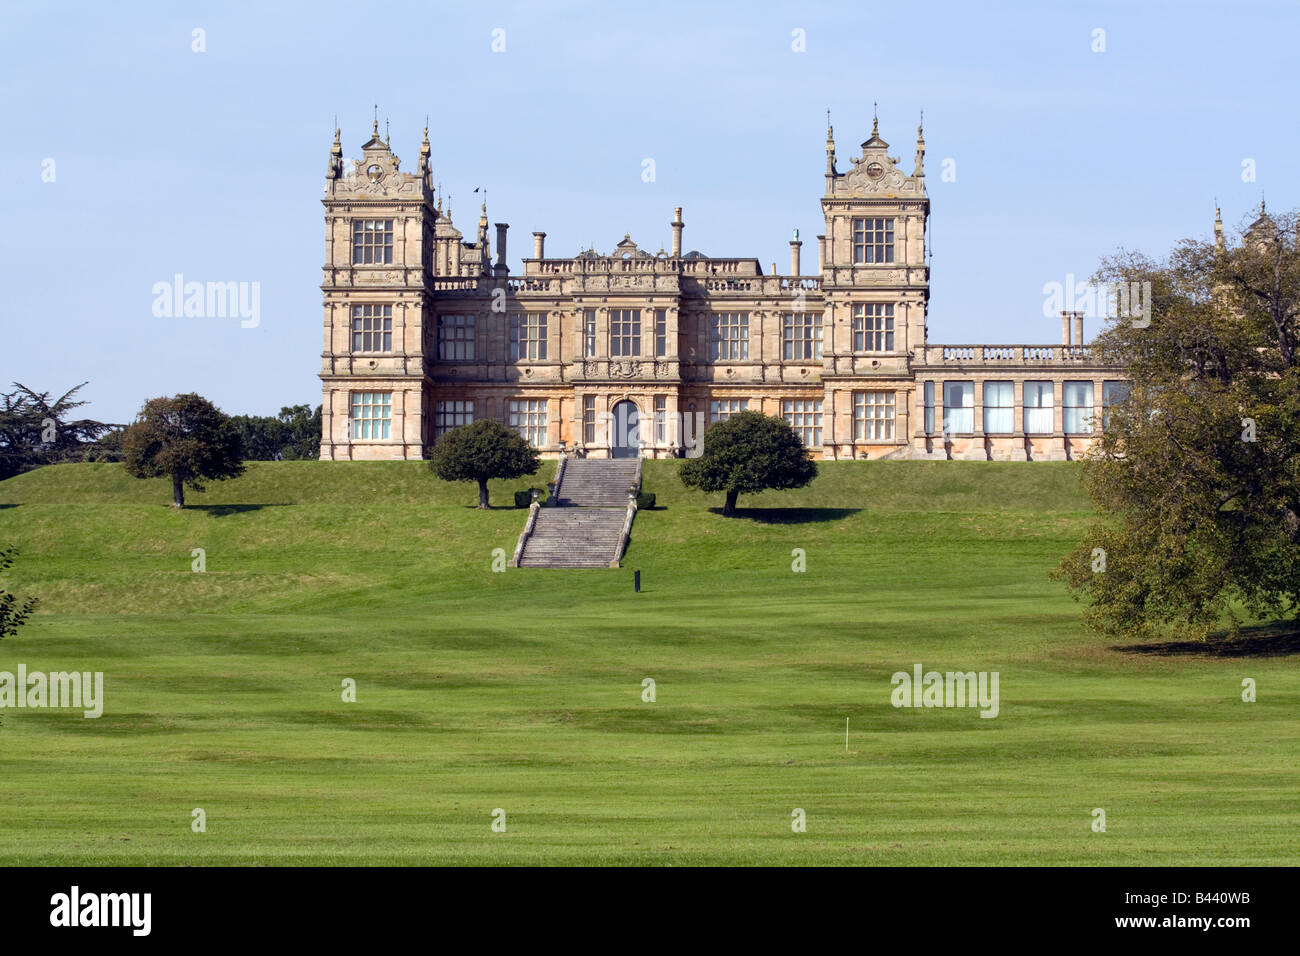 Mentmore Towers Stately Home - Buckinghamshire - Stock Image